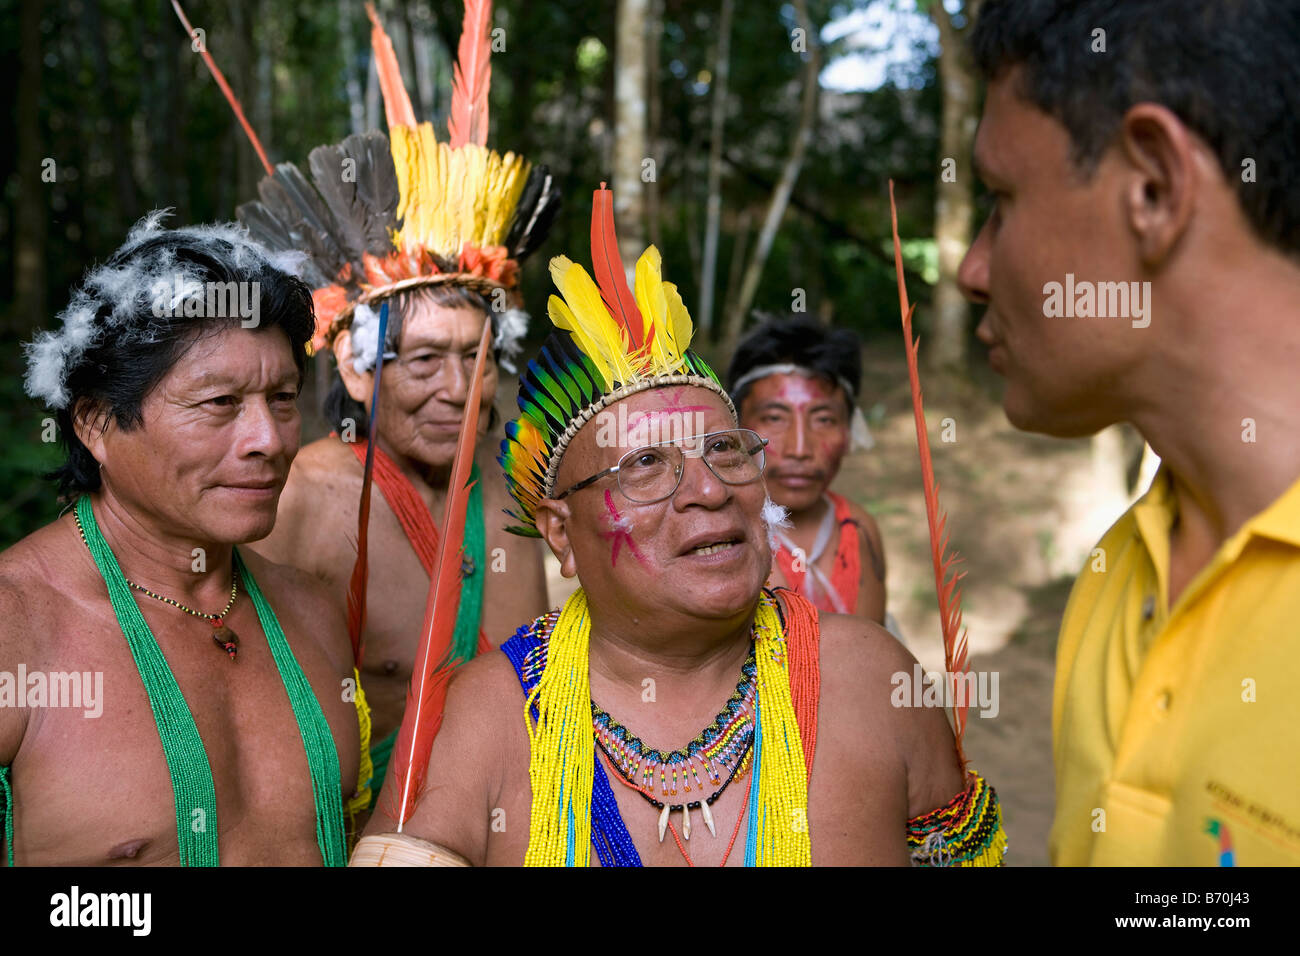 Suriname, Kwamalasamutu, Trio Indians in ceremonial dress talking with tourist guide. Stock Photo